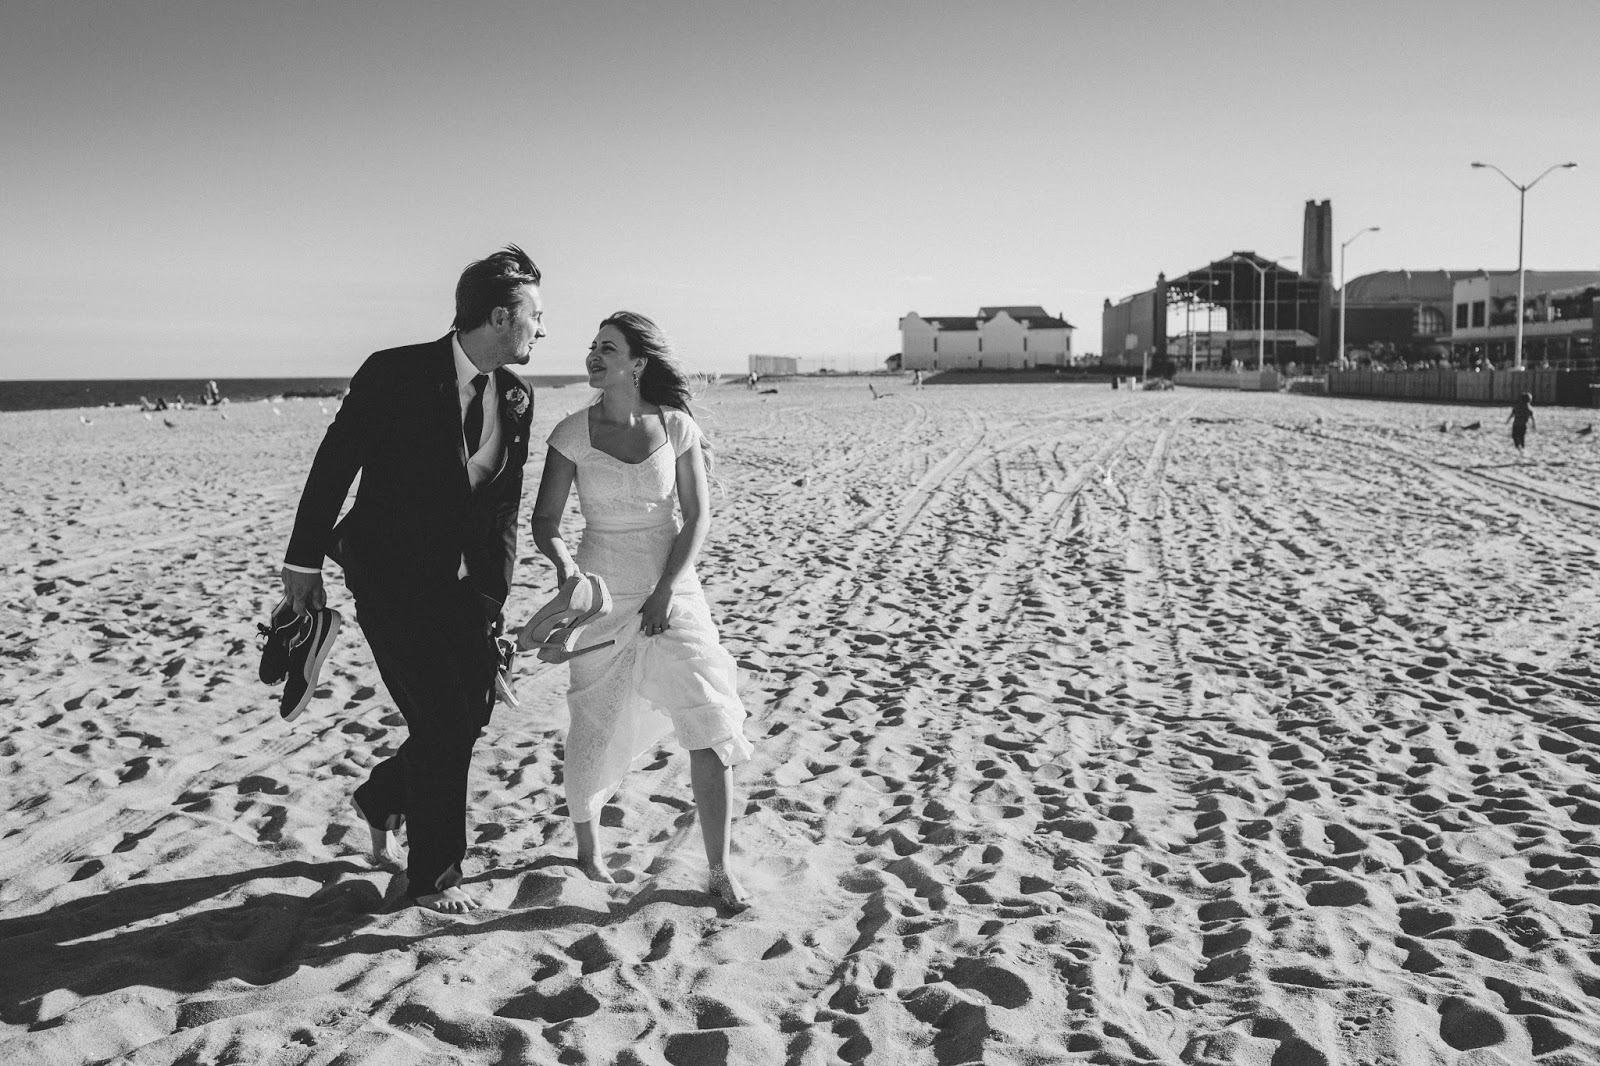 Asbury Park Wedding Photographer | blog.cassiecastellaw.com